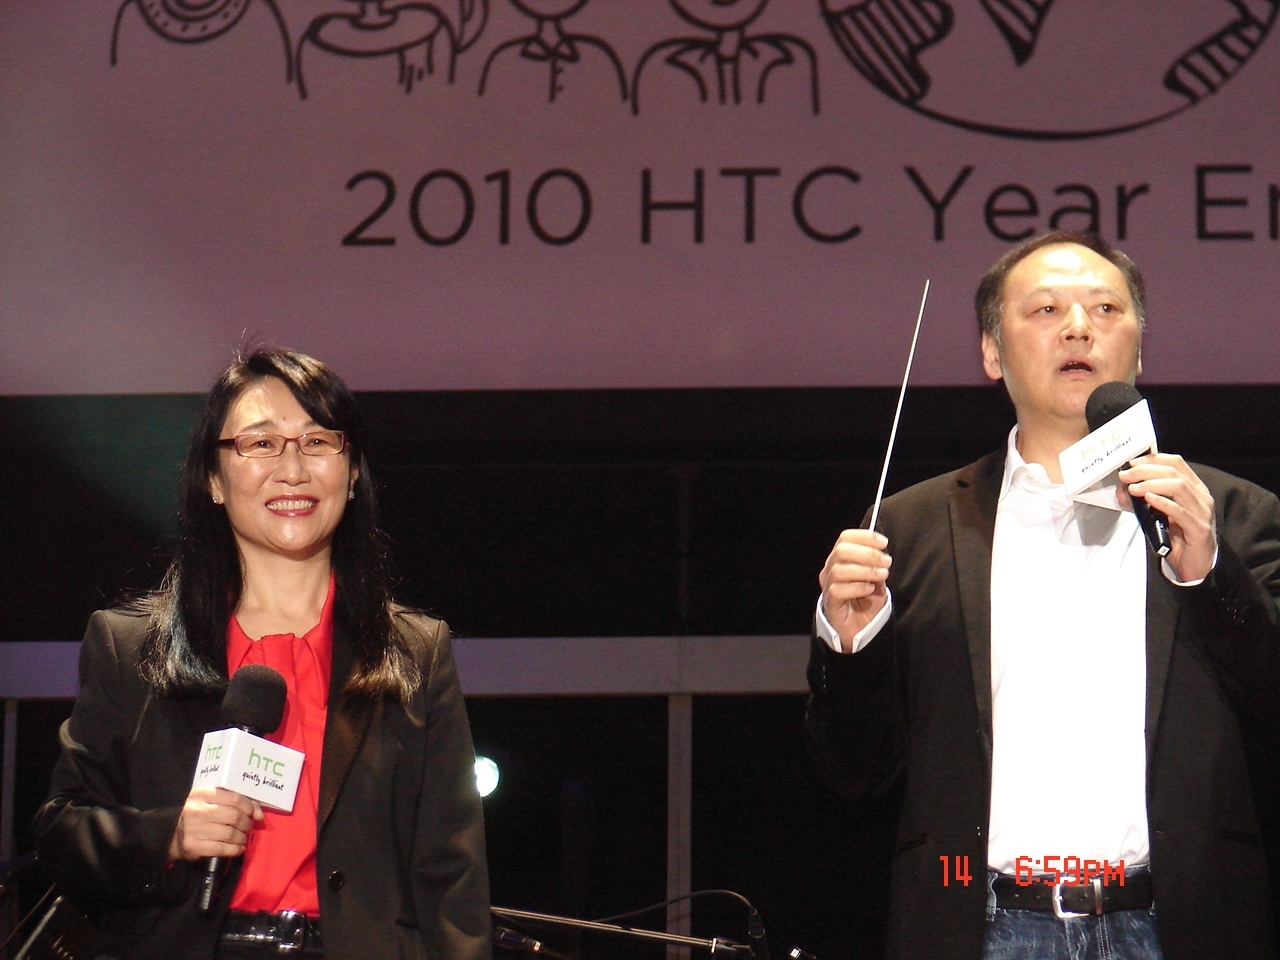 Top 100 global brands 2011: Taiwan-based HTC jumps onto the list for the first time